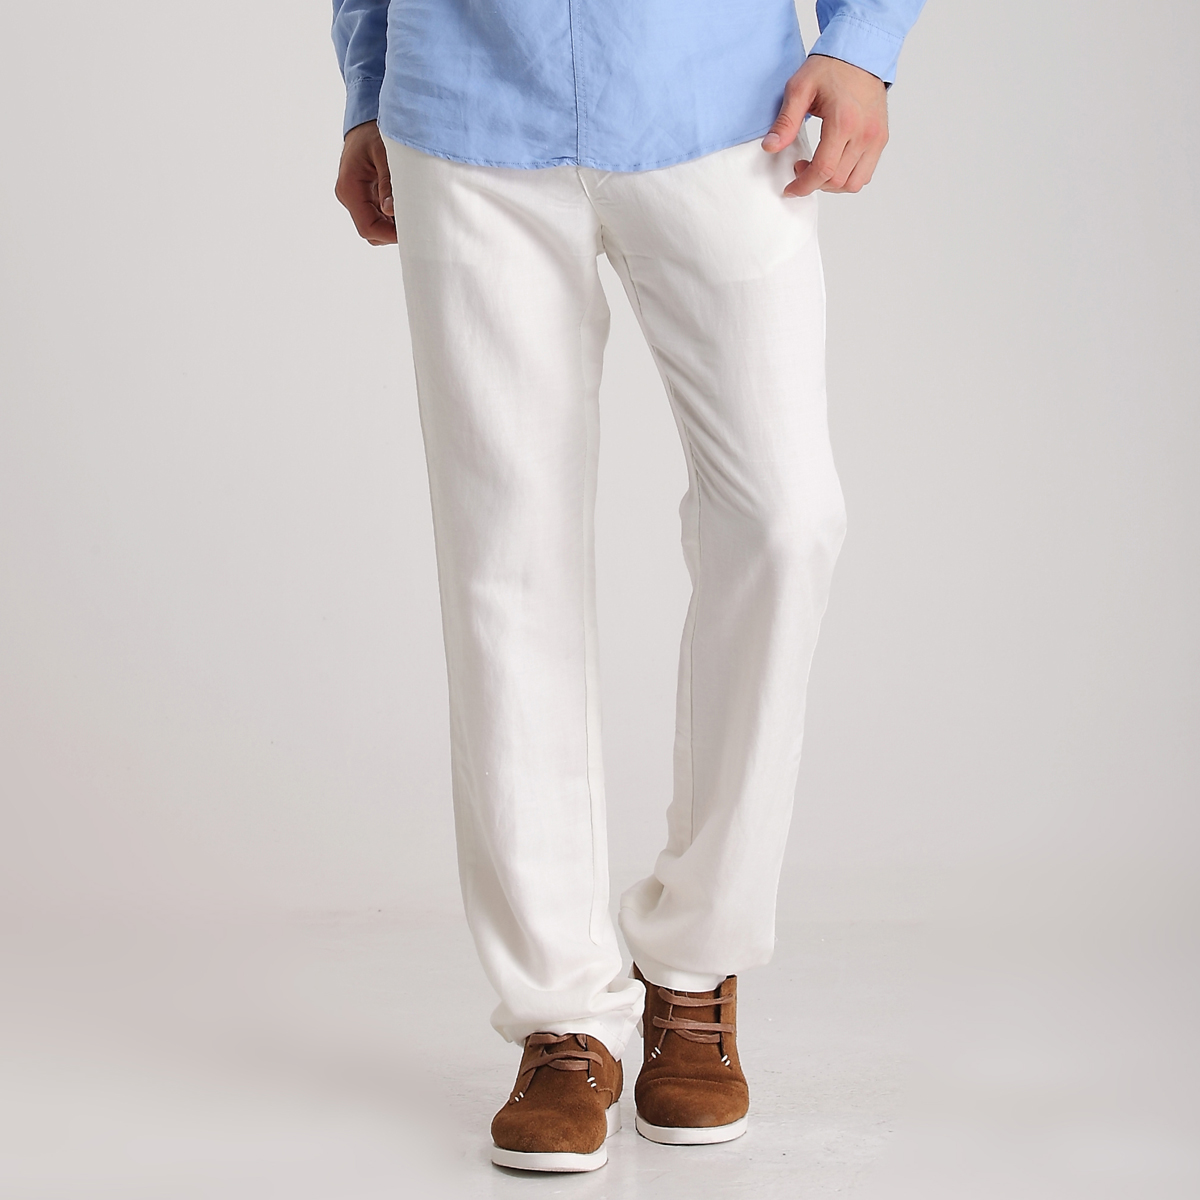 cotton linen pants men - Pi Pants